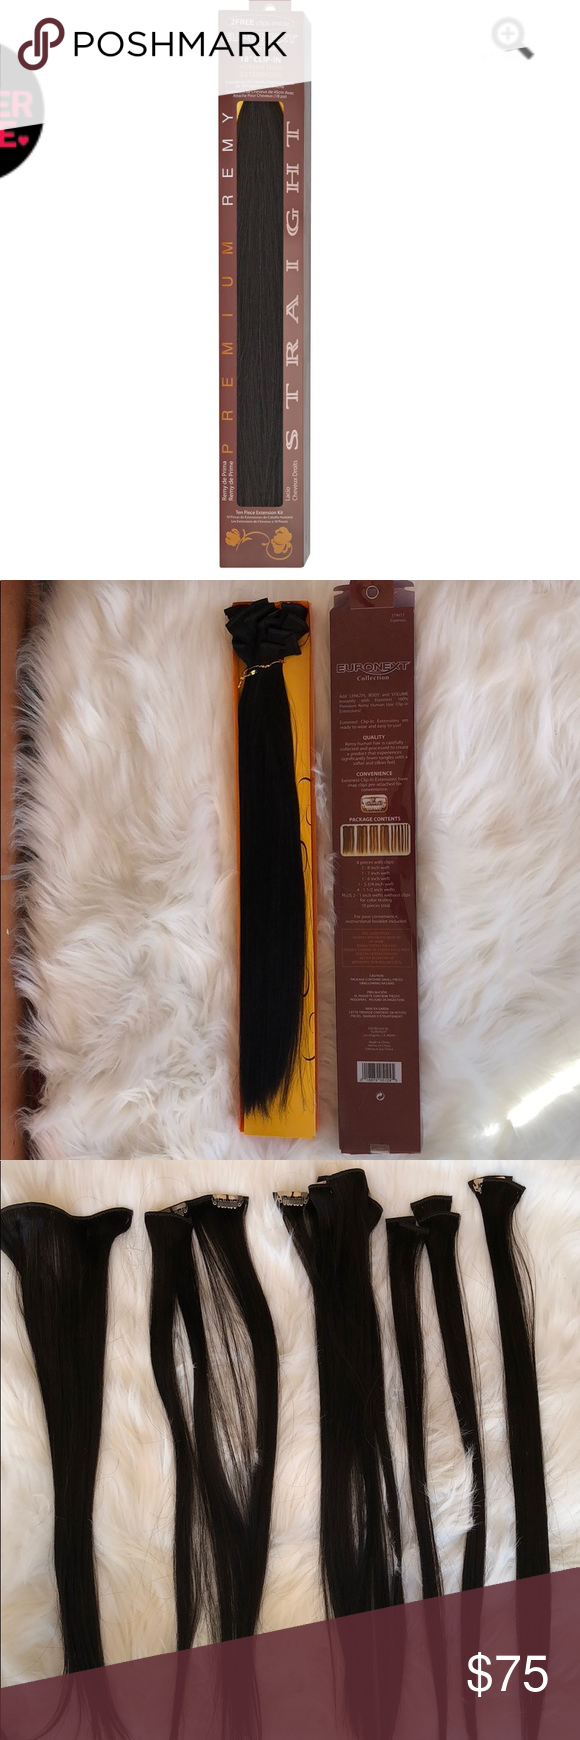 Sally Beauty Euronext Human Hair Extensions Pinterest Sally